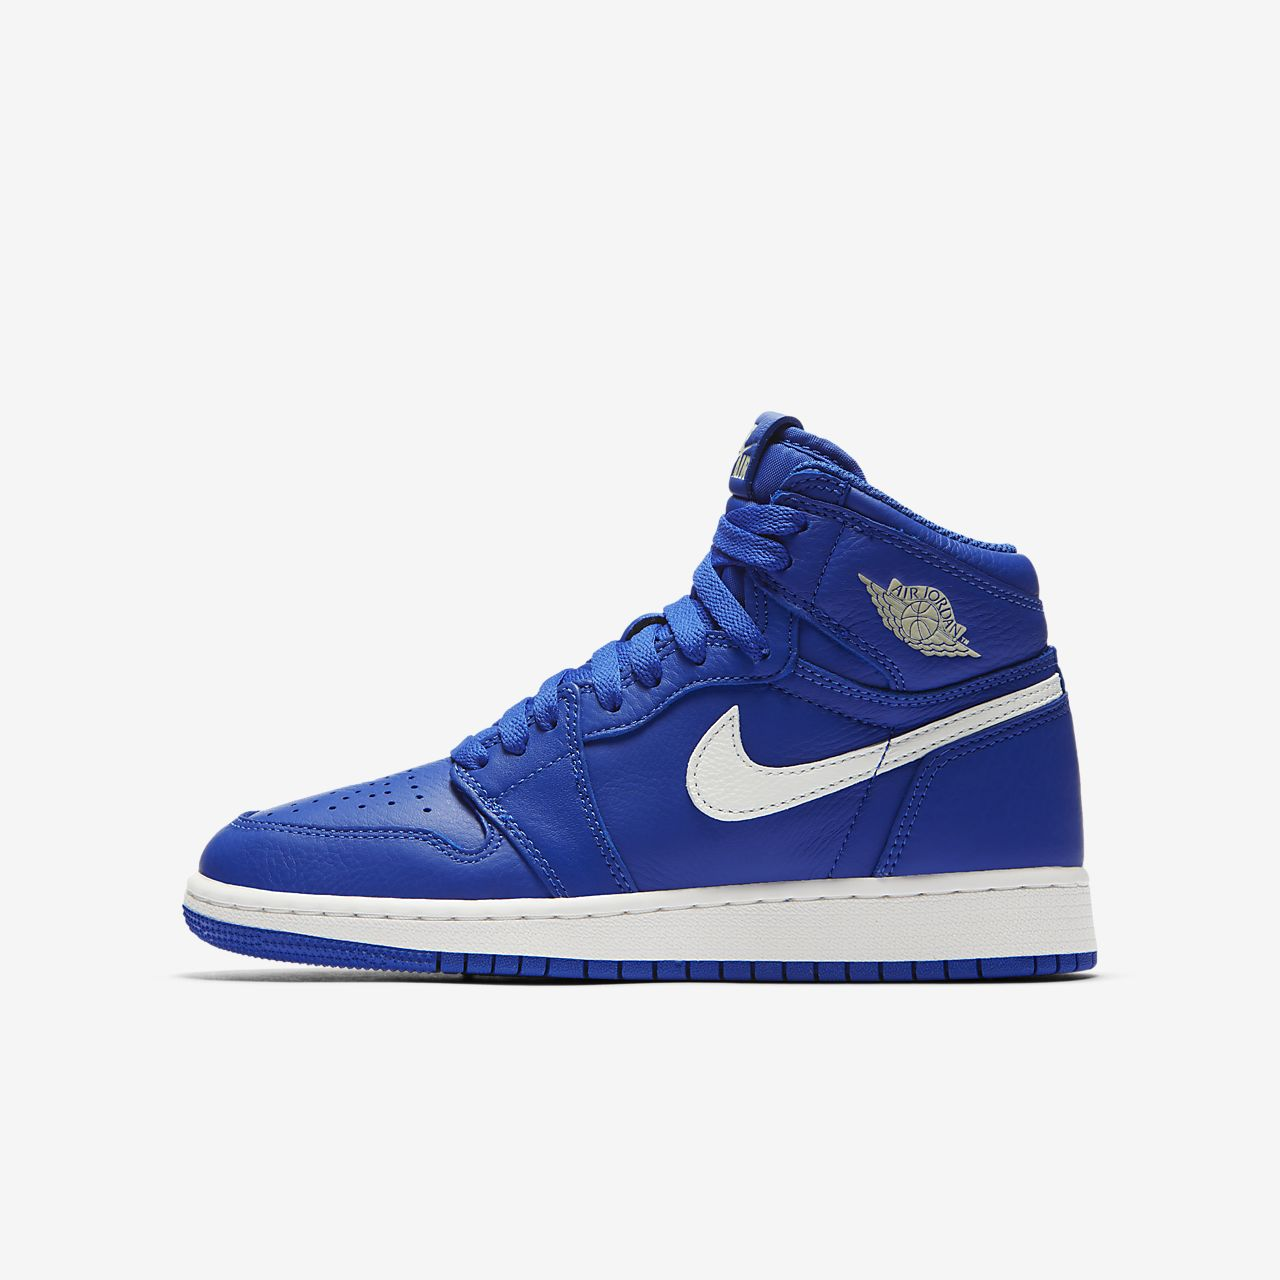 48783771aec Air Jordan 1 Retro High OG Boys' Shoe. Nike.com GB